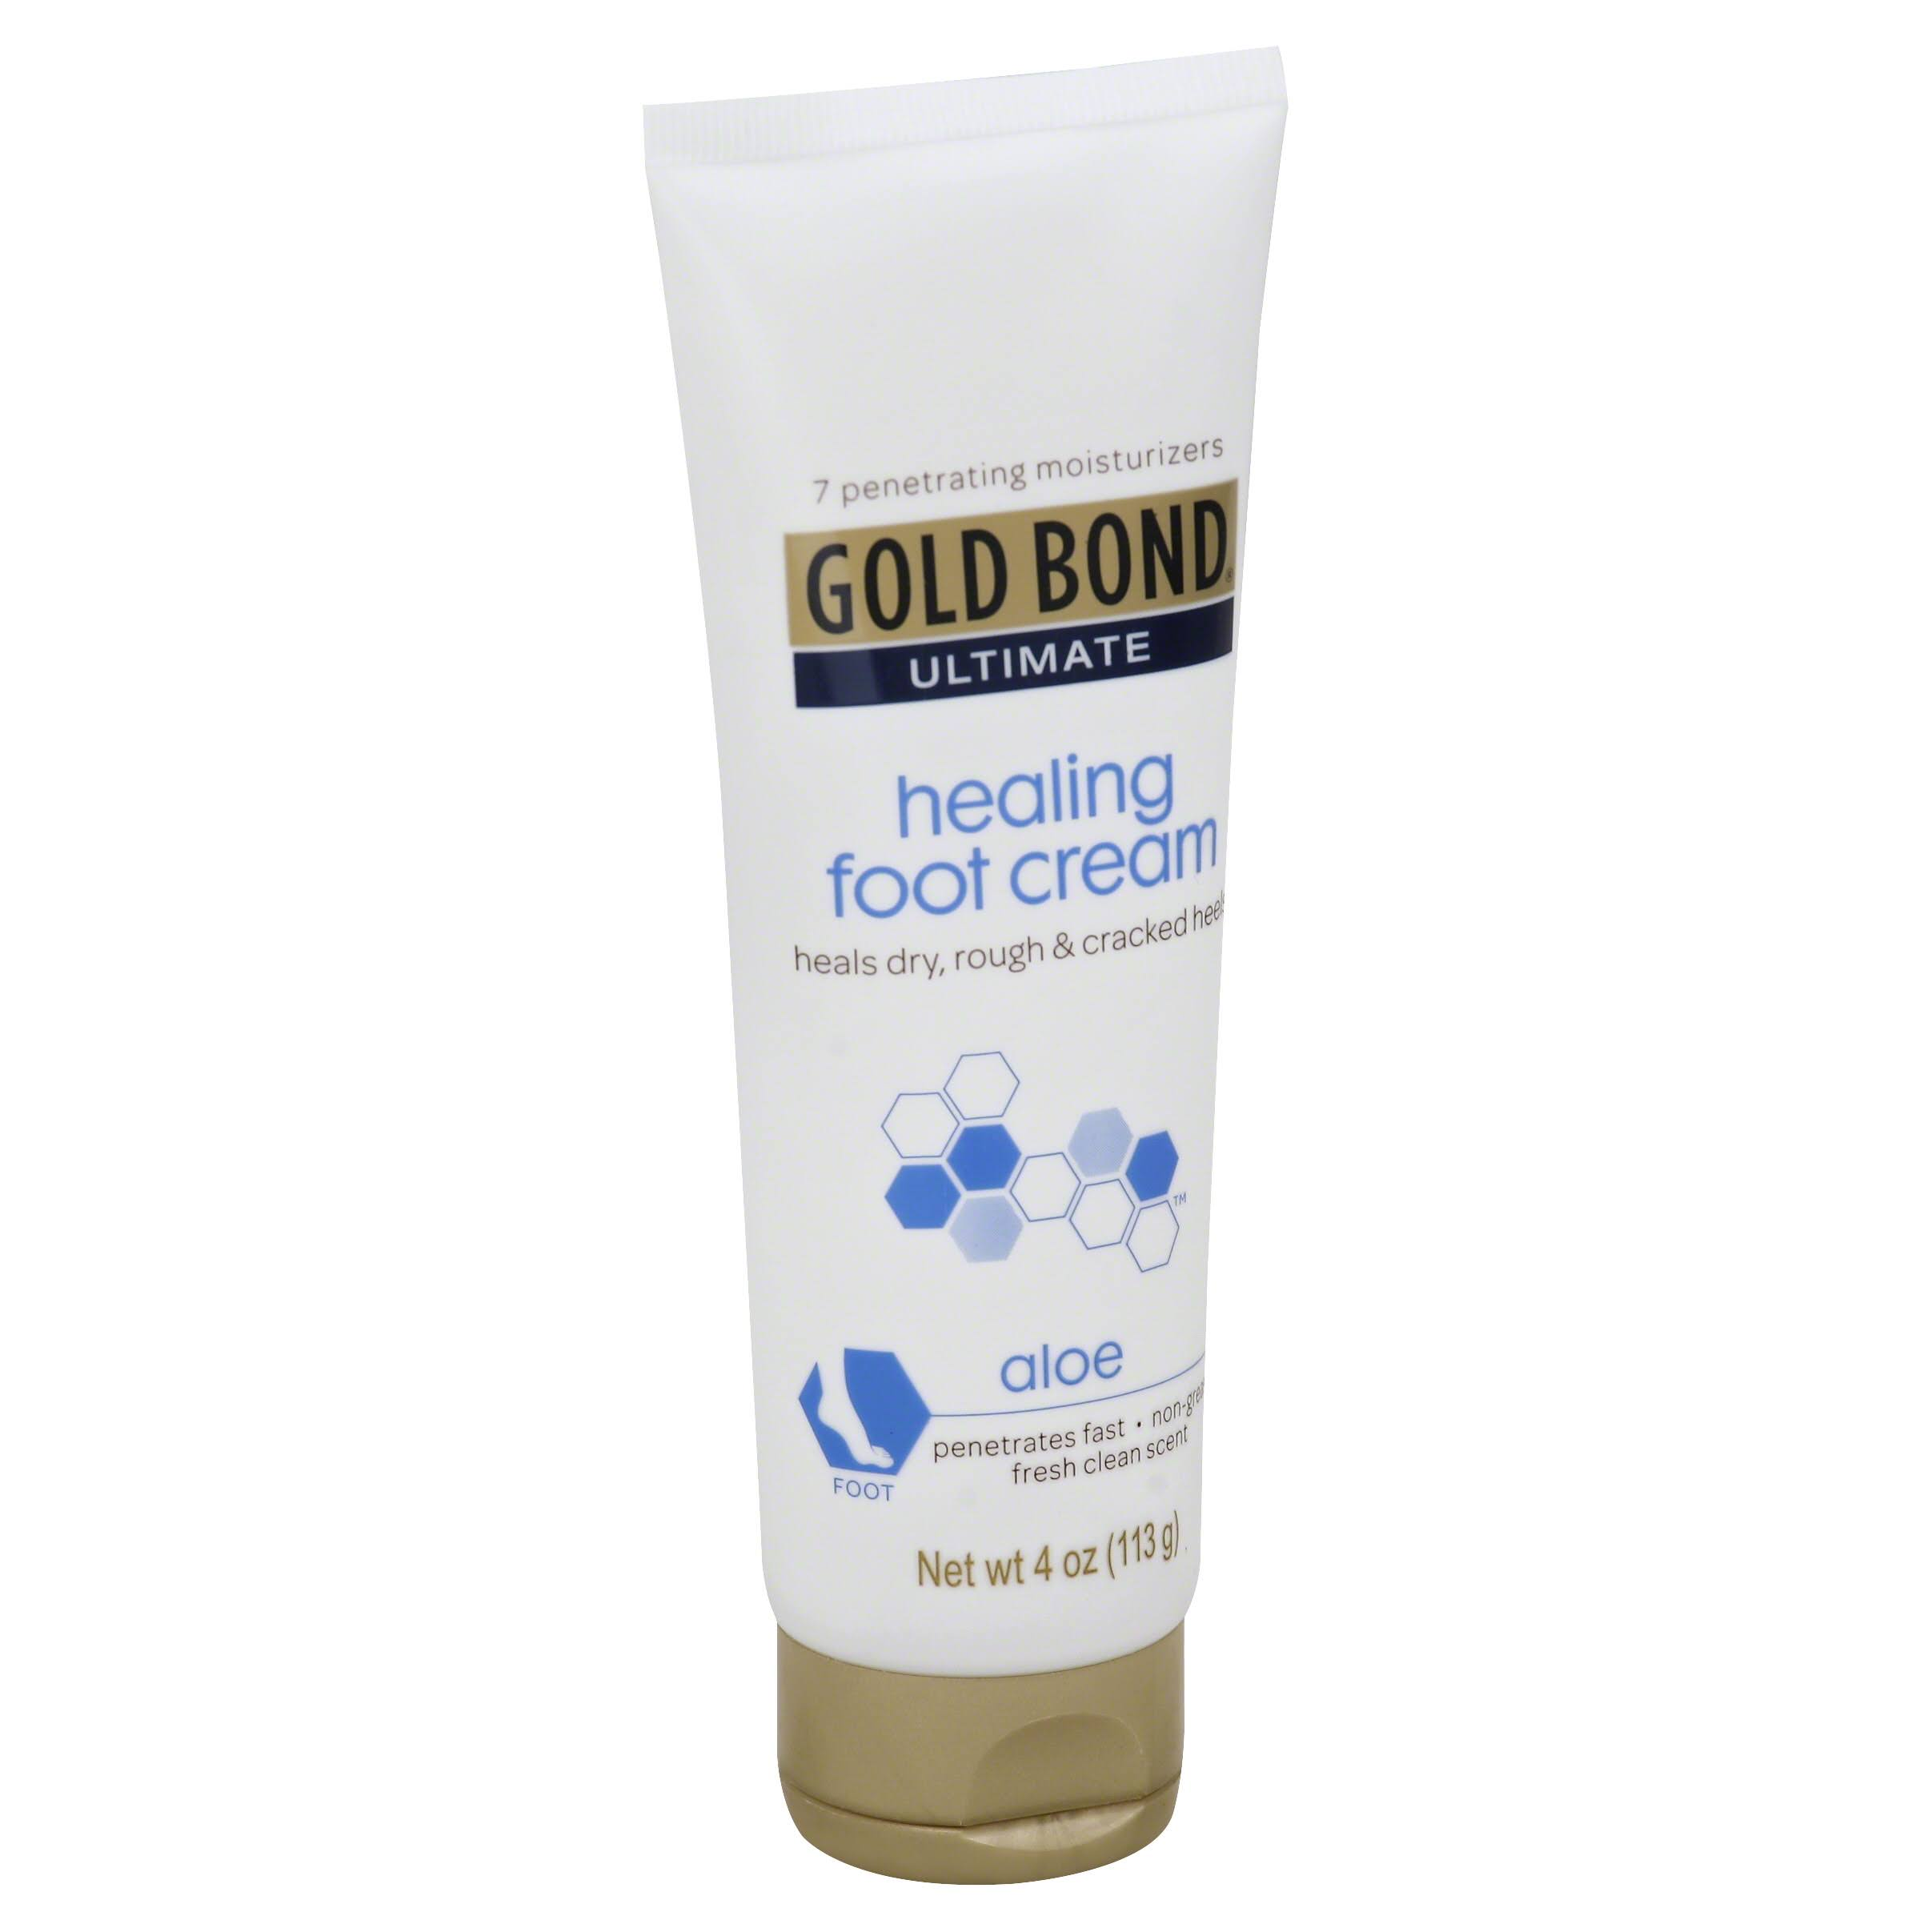 Gold Bond Ultimate Aloe Healing Foot Cream - 113g